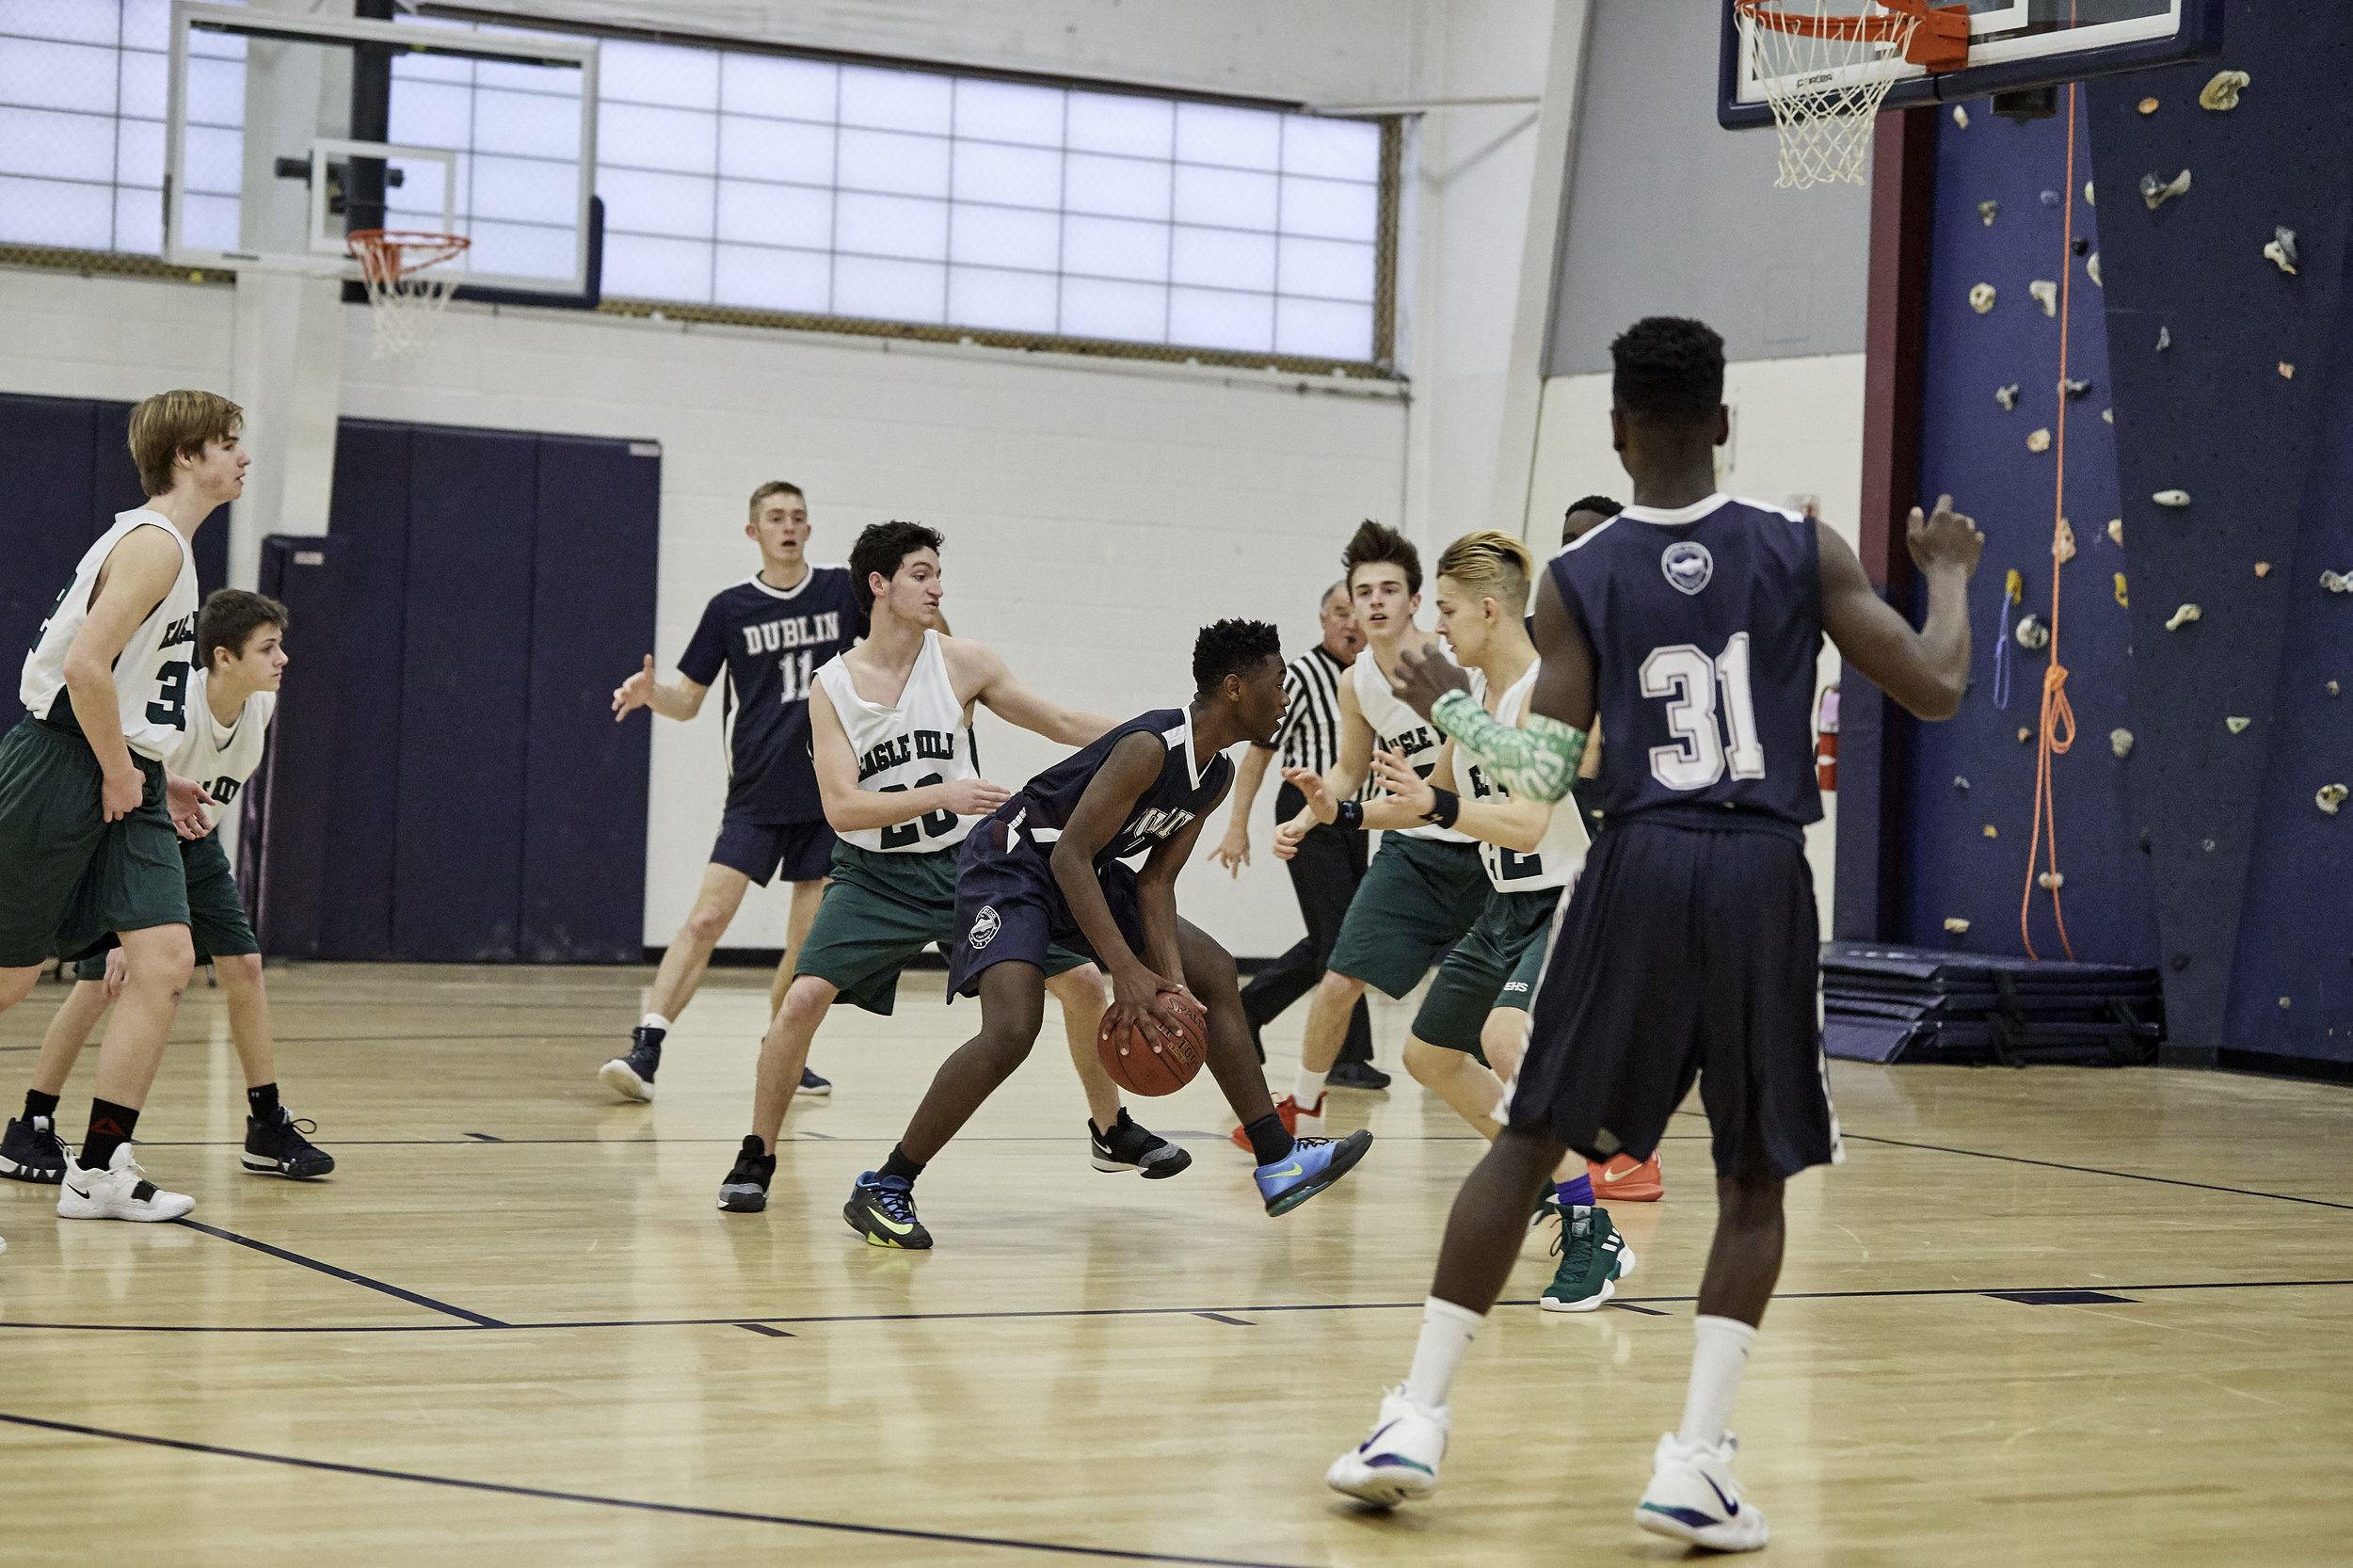 Boys Varsity Basketball vs. Eagle Hill School JV at RVAL Tournament - February 11, 2019 - 167991.jpg